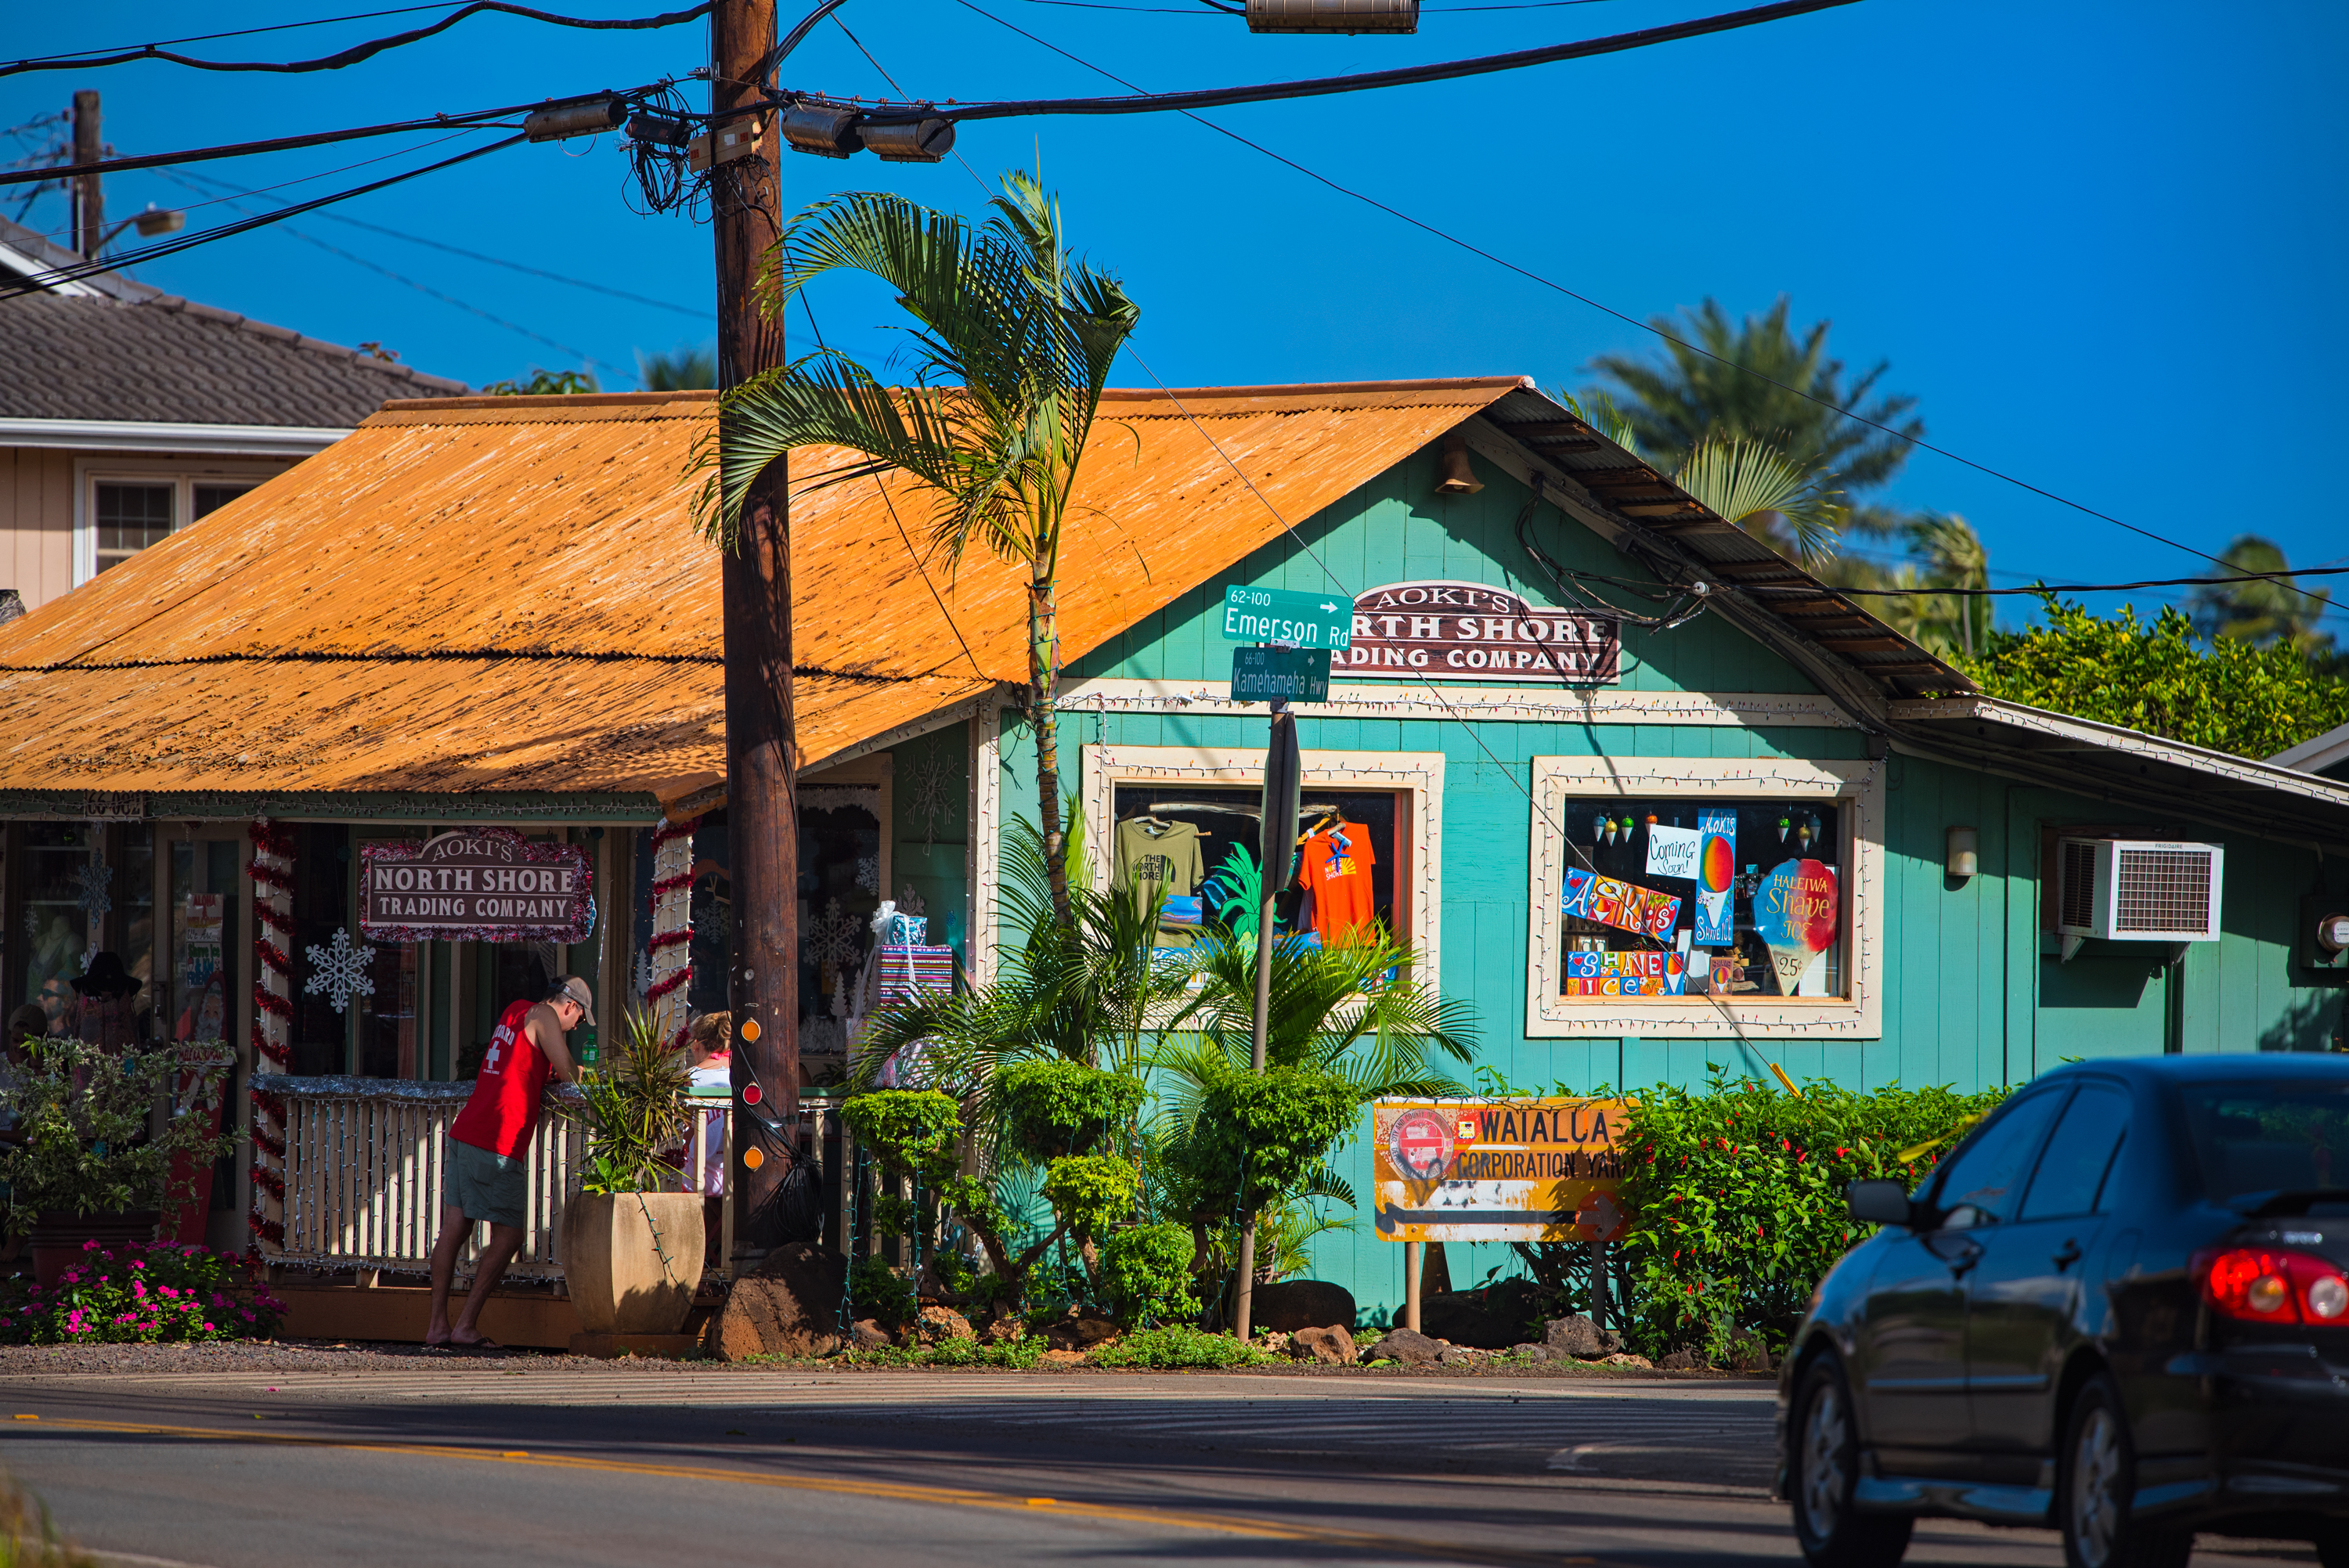 Aoki's North Shore Trading Company